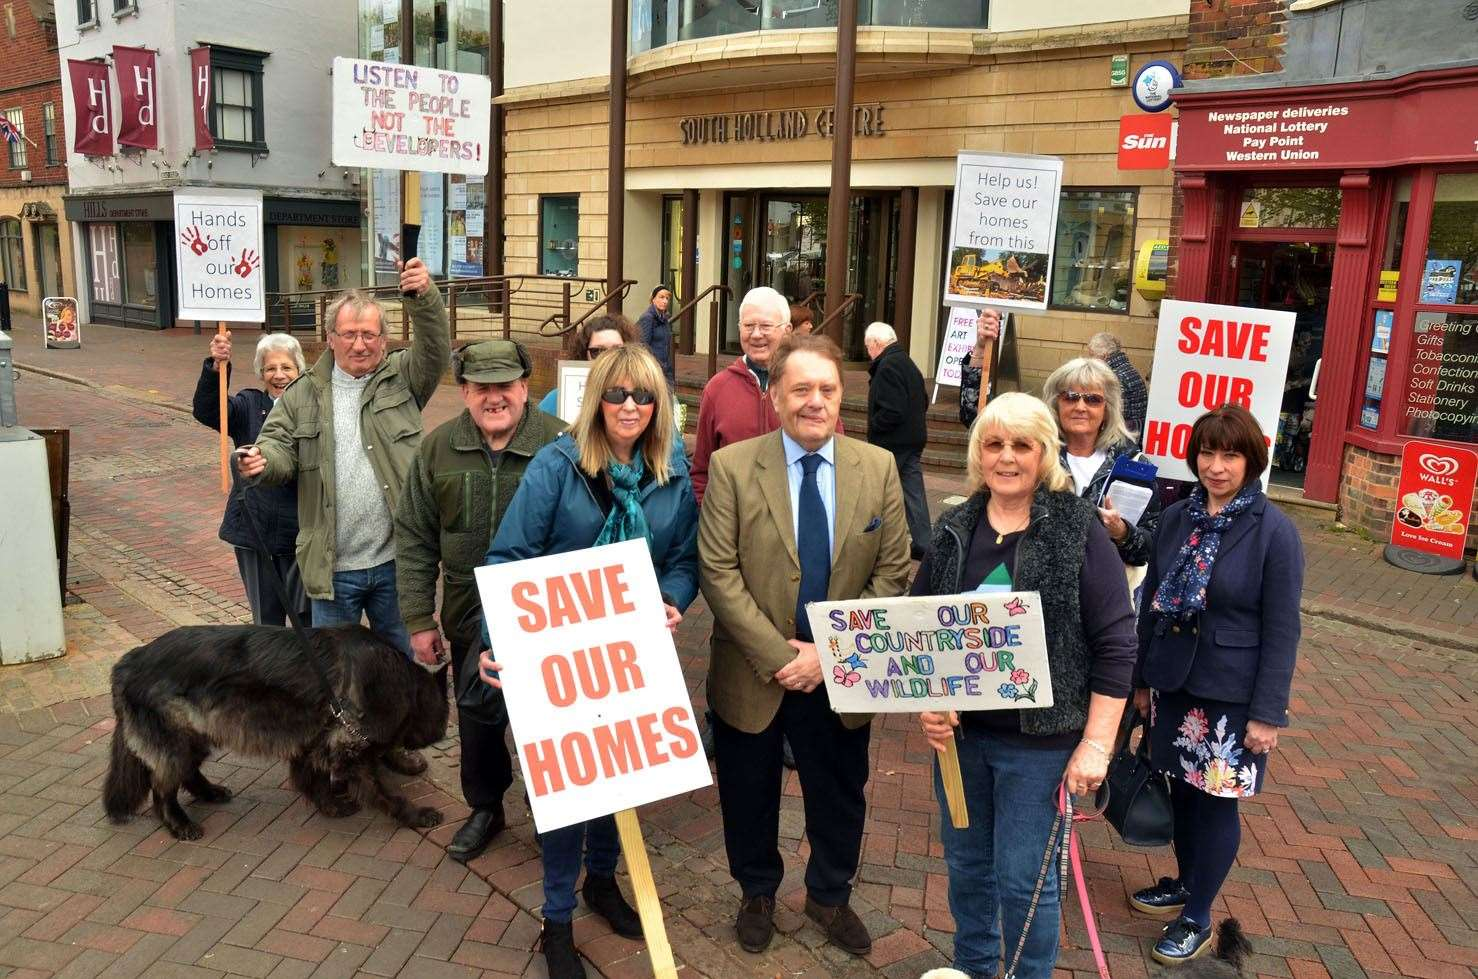 MP Sir John Hayes with relief road protesters outside The South Holland Centre, Spalding.